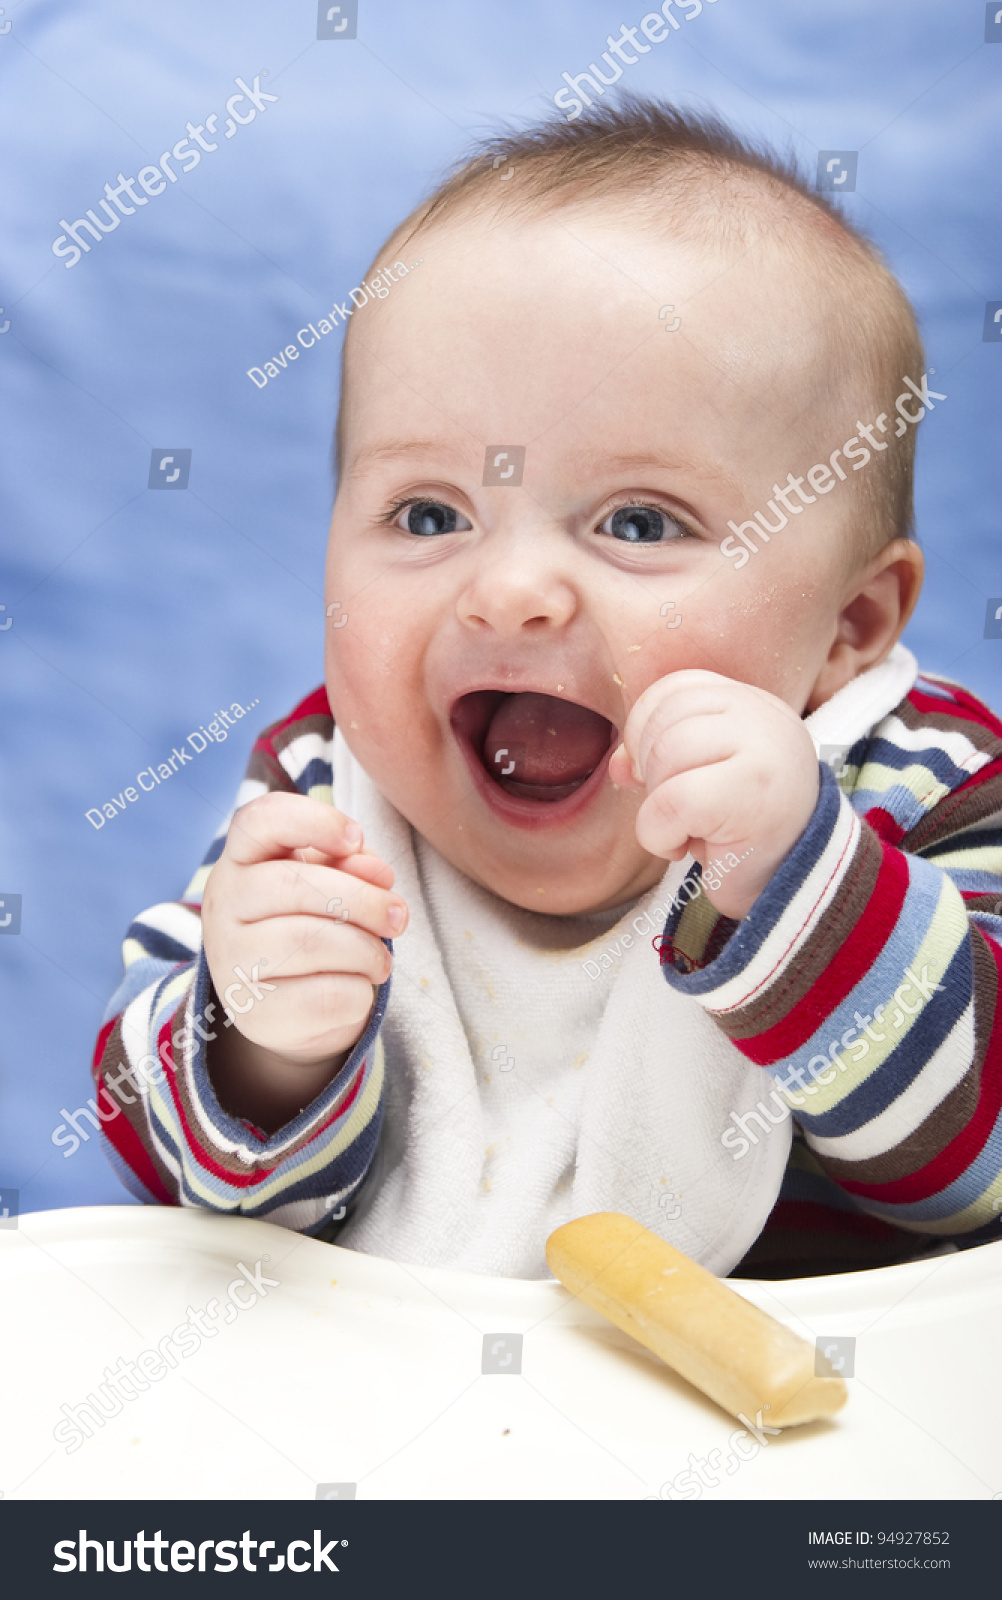 Very Excited, Messy 6 Month Old Boy Stock Photo 94927852 ...